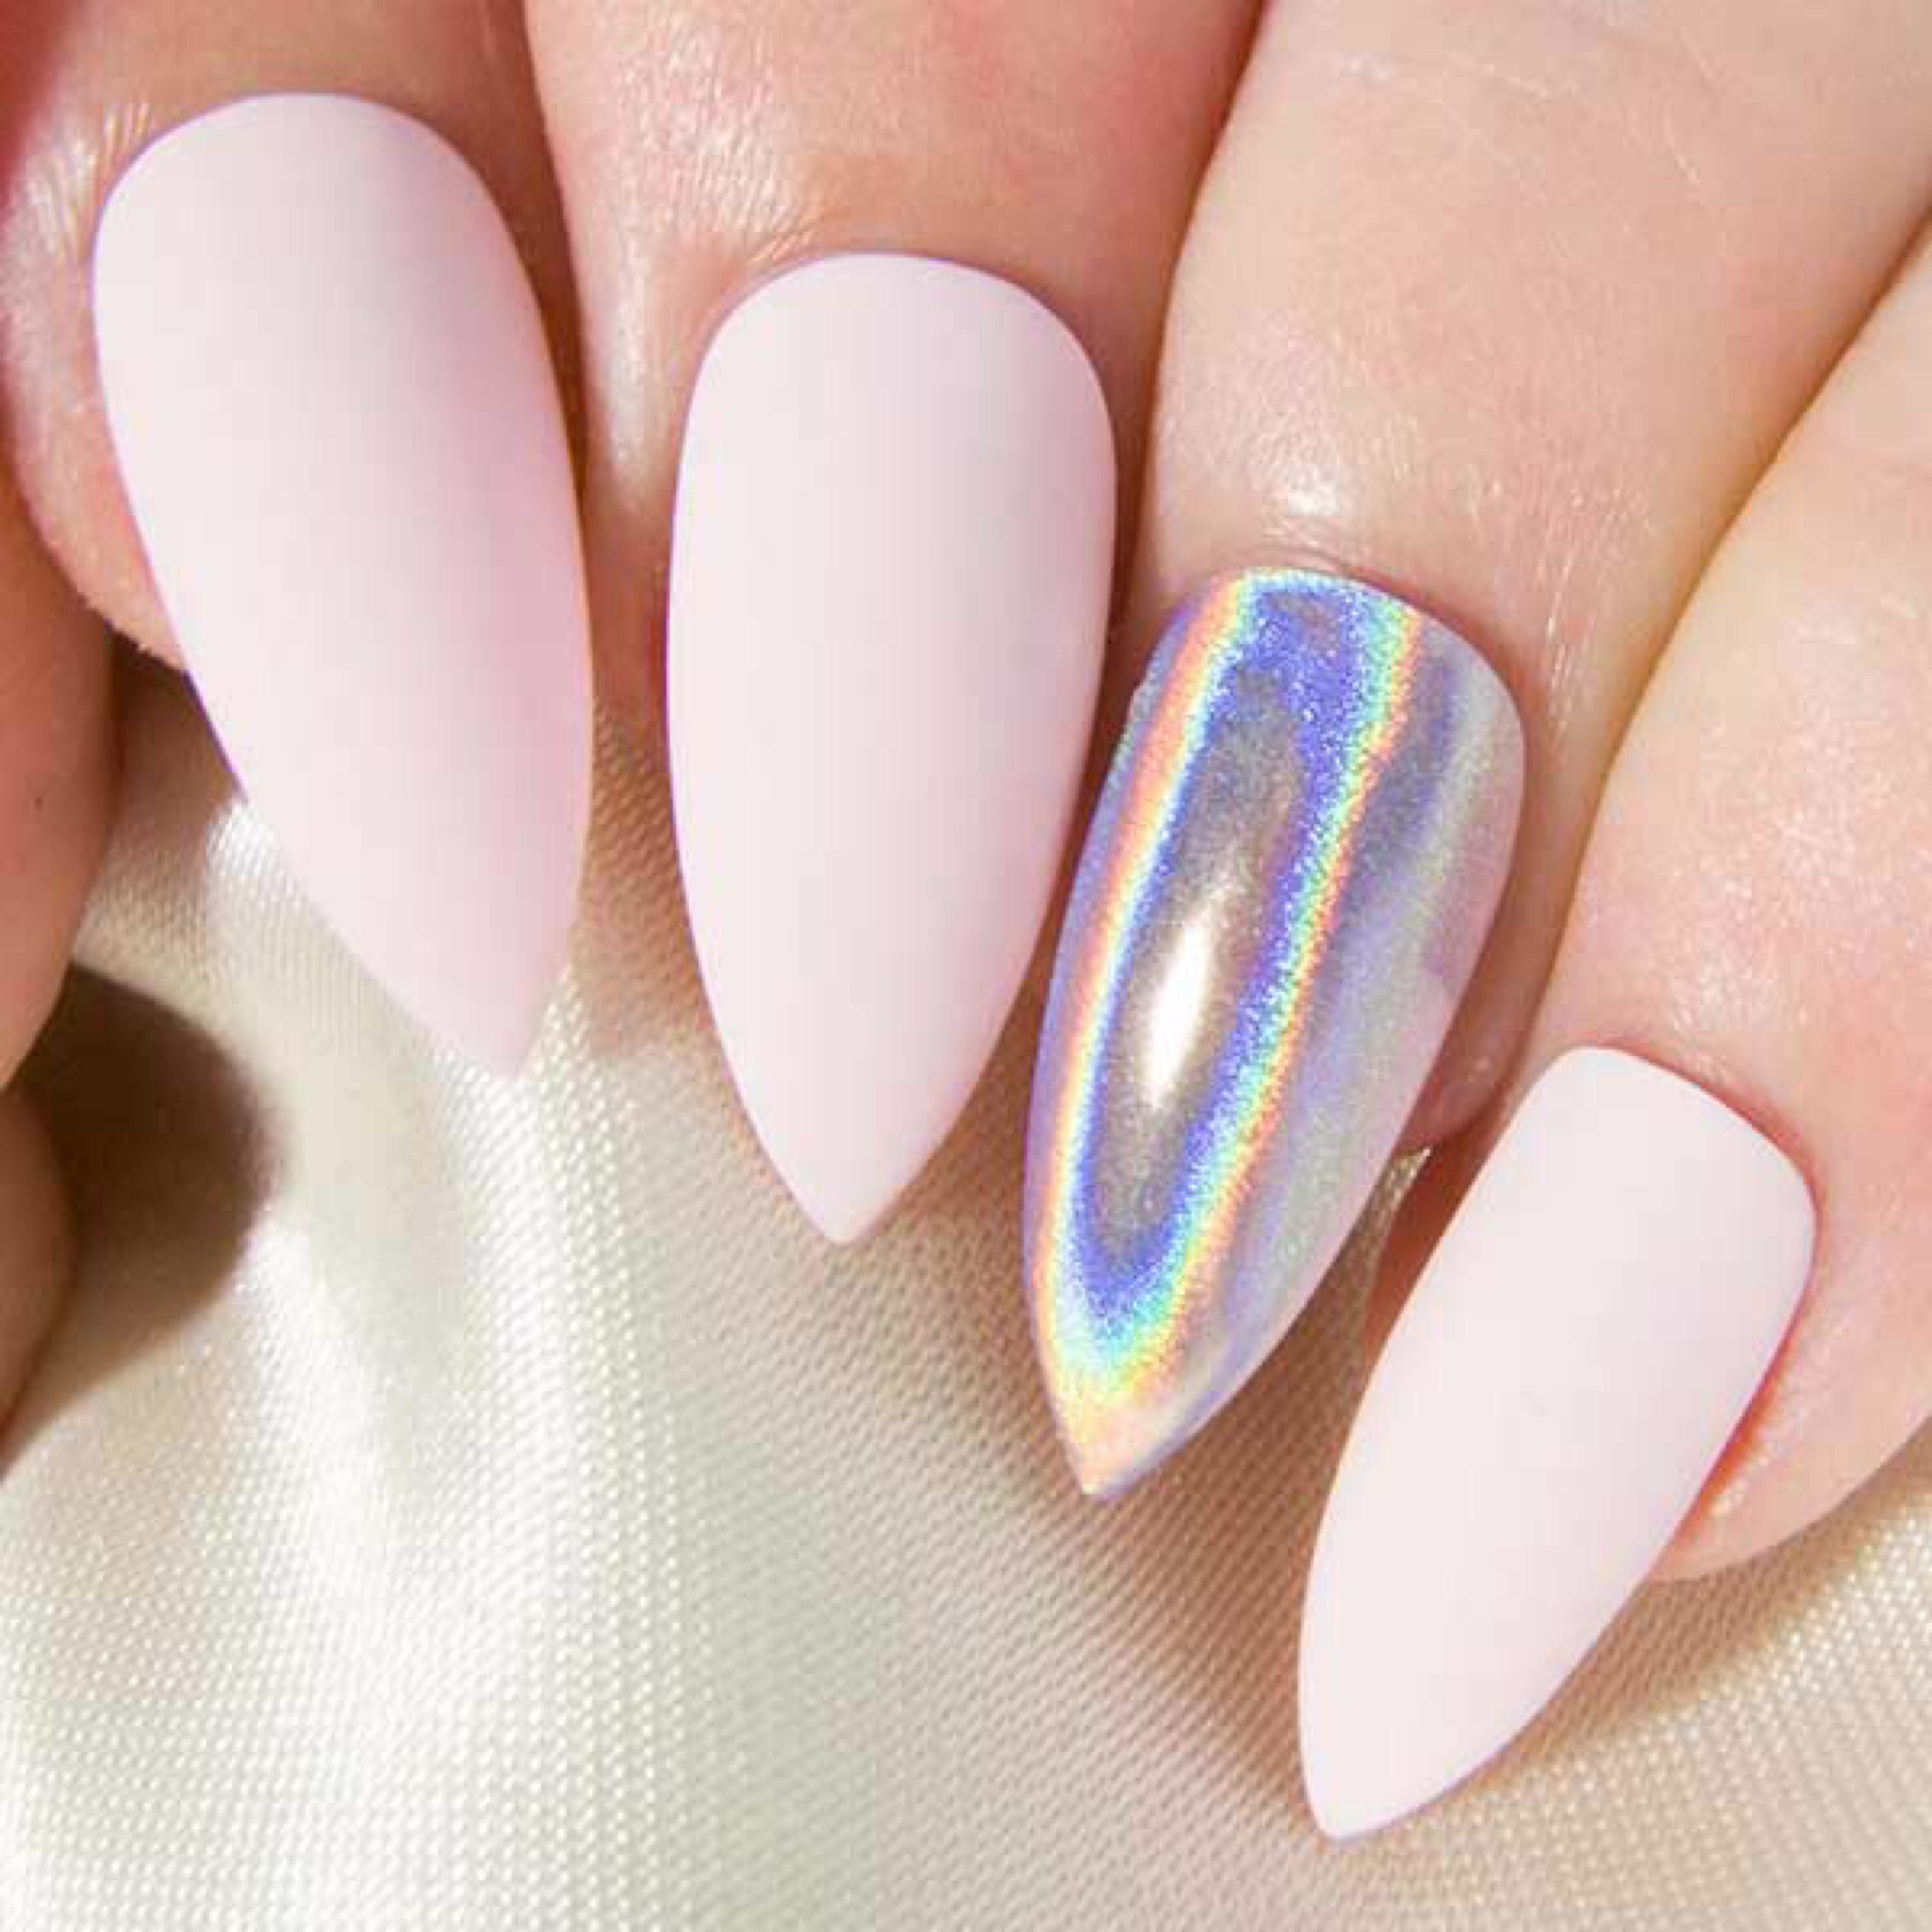 Matte fake nails stiletto press on nails pointy glue on 2999 prinsesfo Image collections